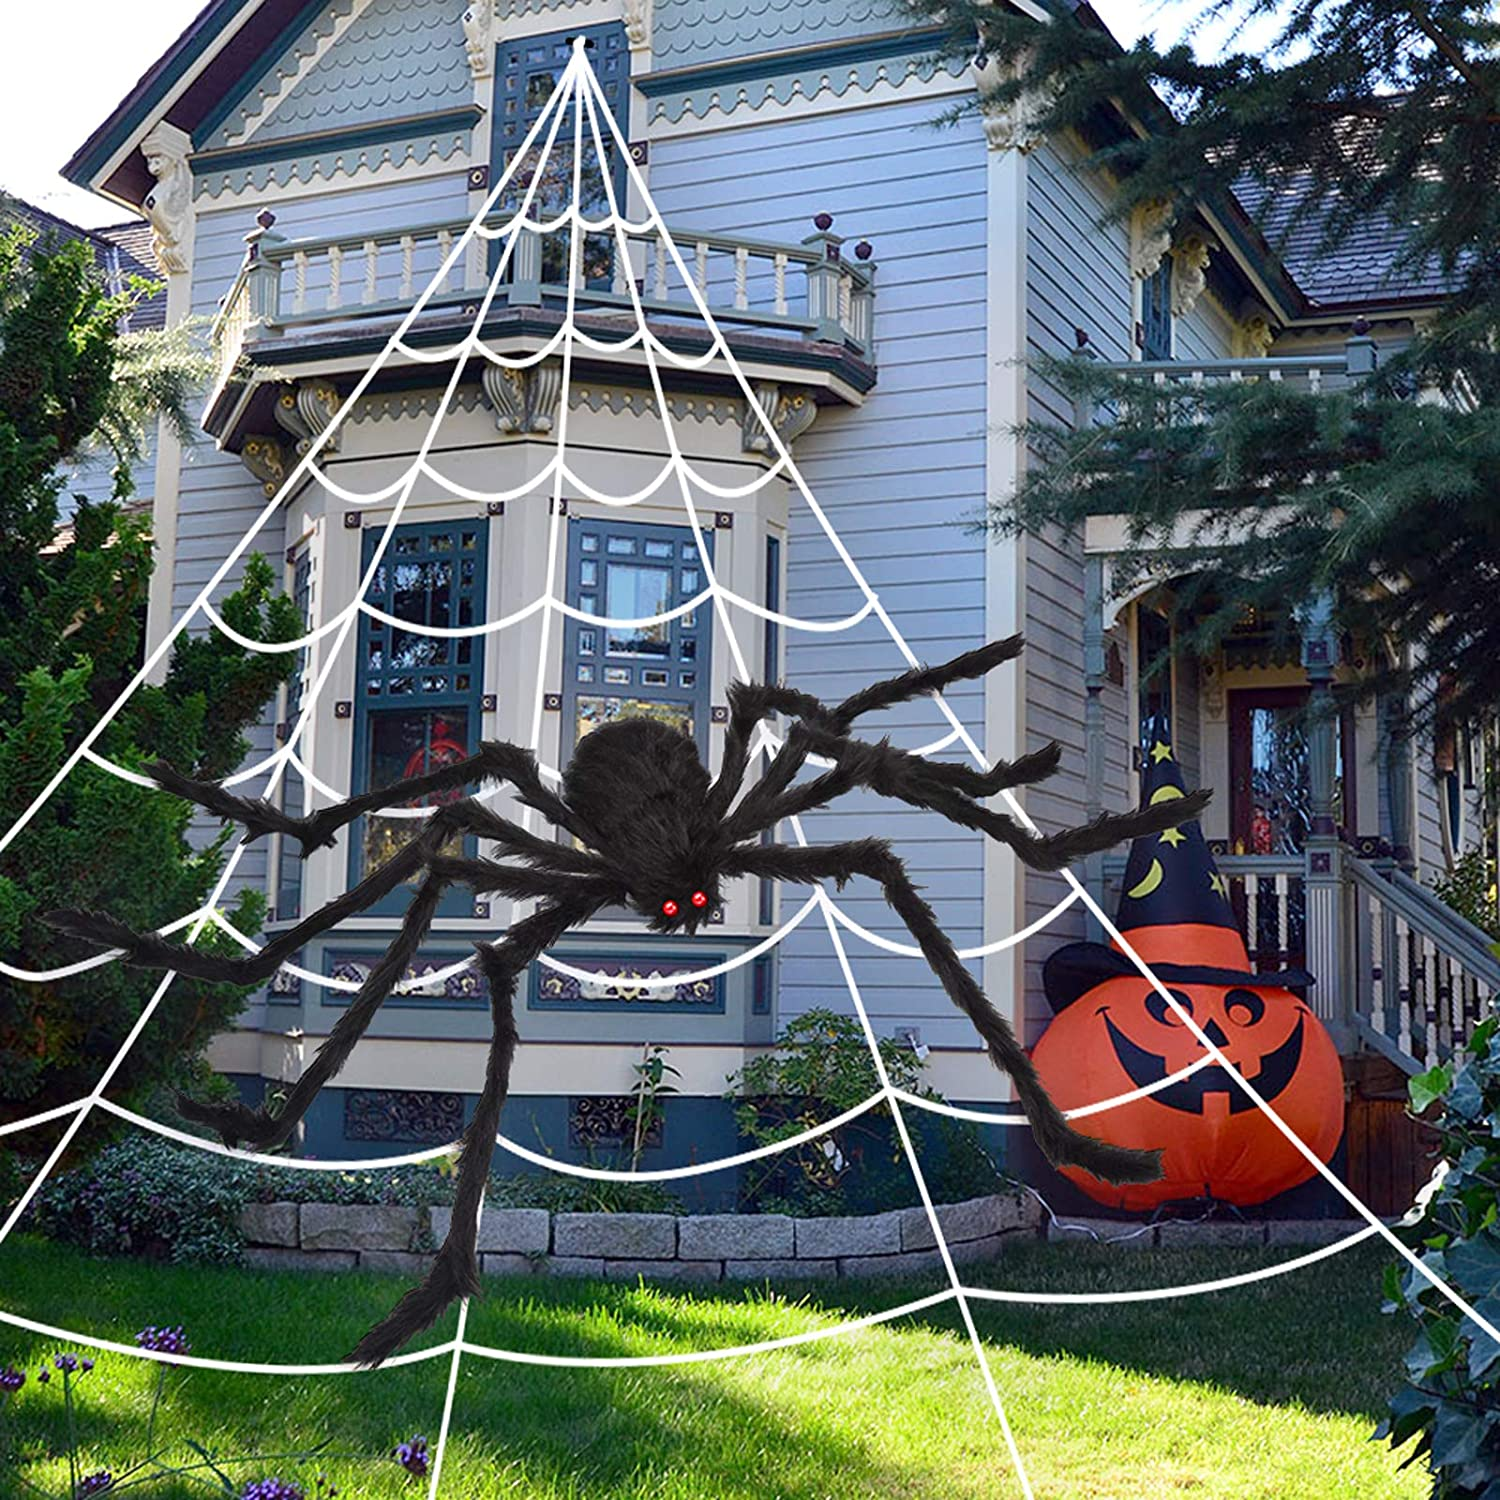 """OCATO 200"""" Halloween Spider Web + 59"""" Giant Spider Decorations Fake Spider with Triangular Huge Spider Web for Indoor Outdoor Halloween Decorations Yard Home Costumes Parties Haunted House Décor"""